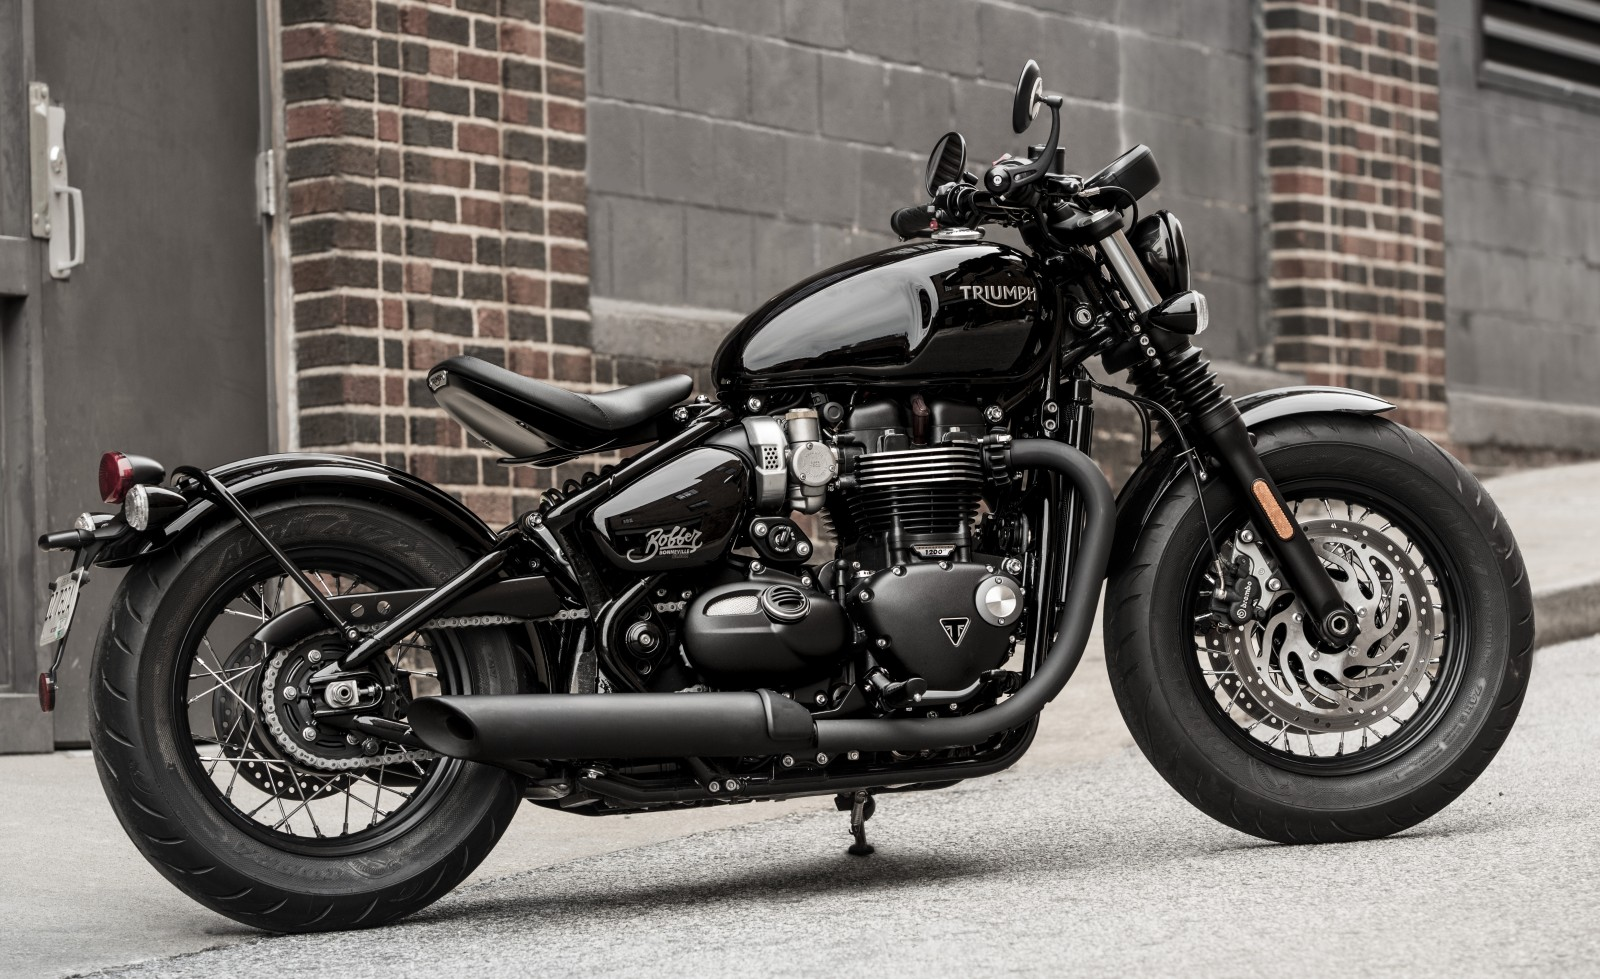 Triumph 2018 Bobber Black and Speedmaster